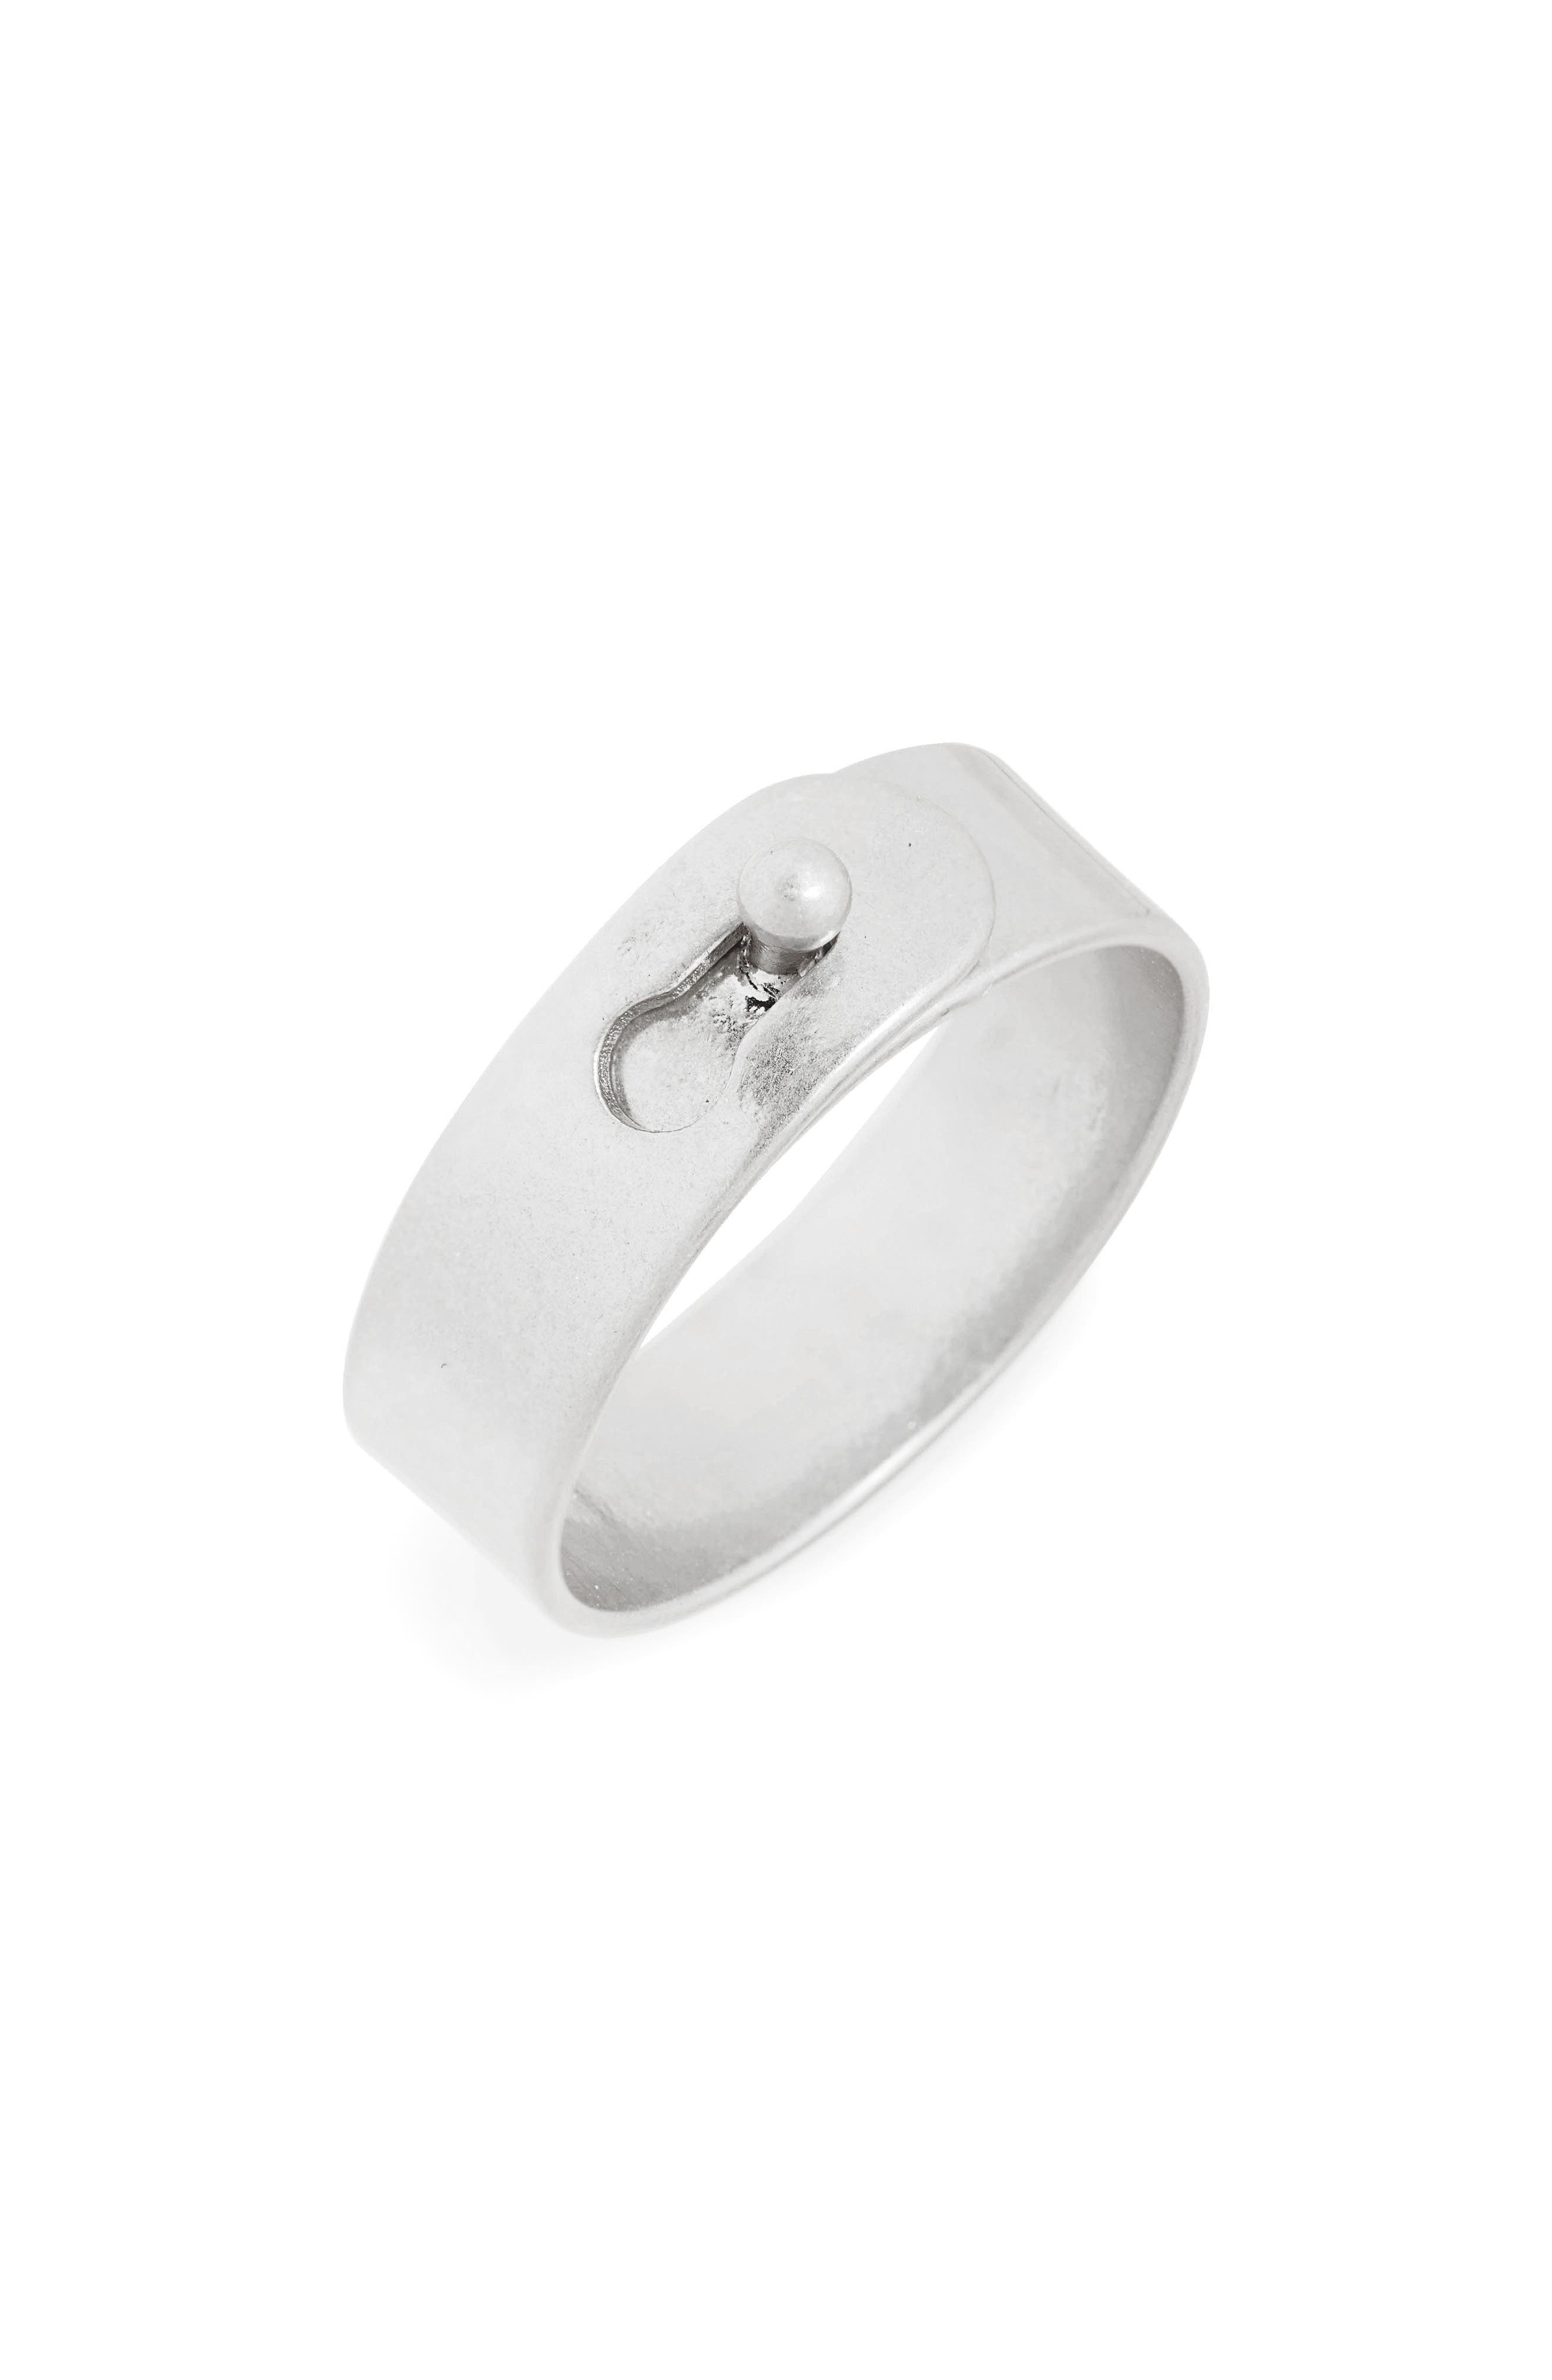 Glider Ring,                         Main,                         color, LIGHT SILVER OX